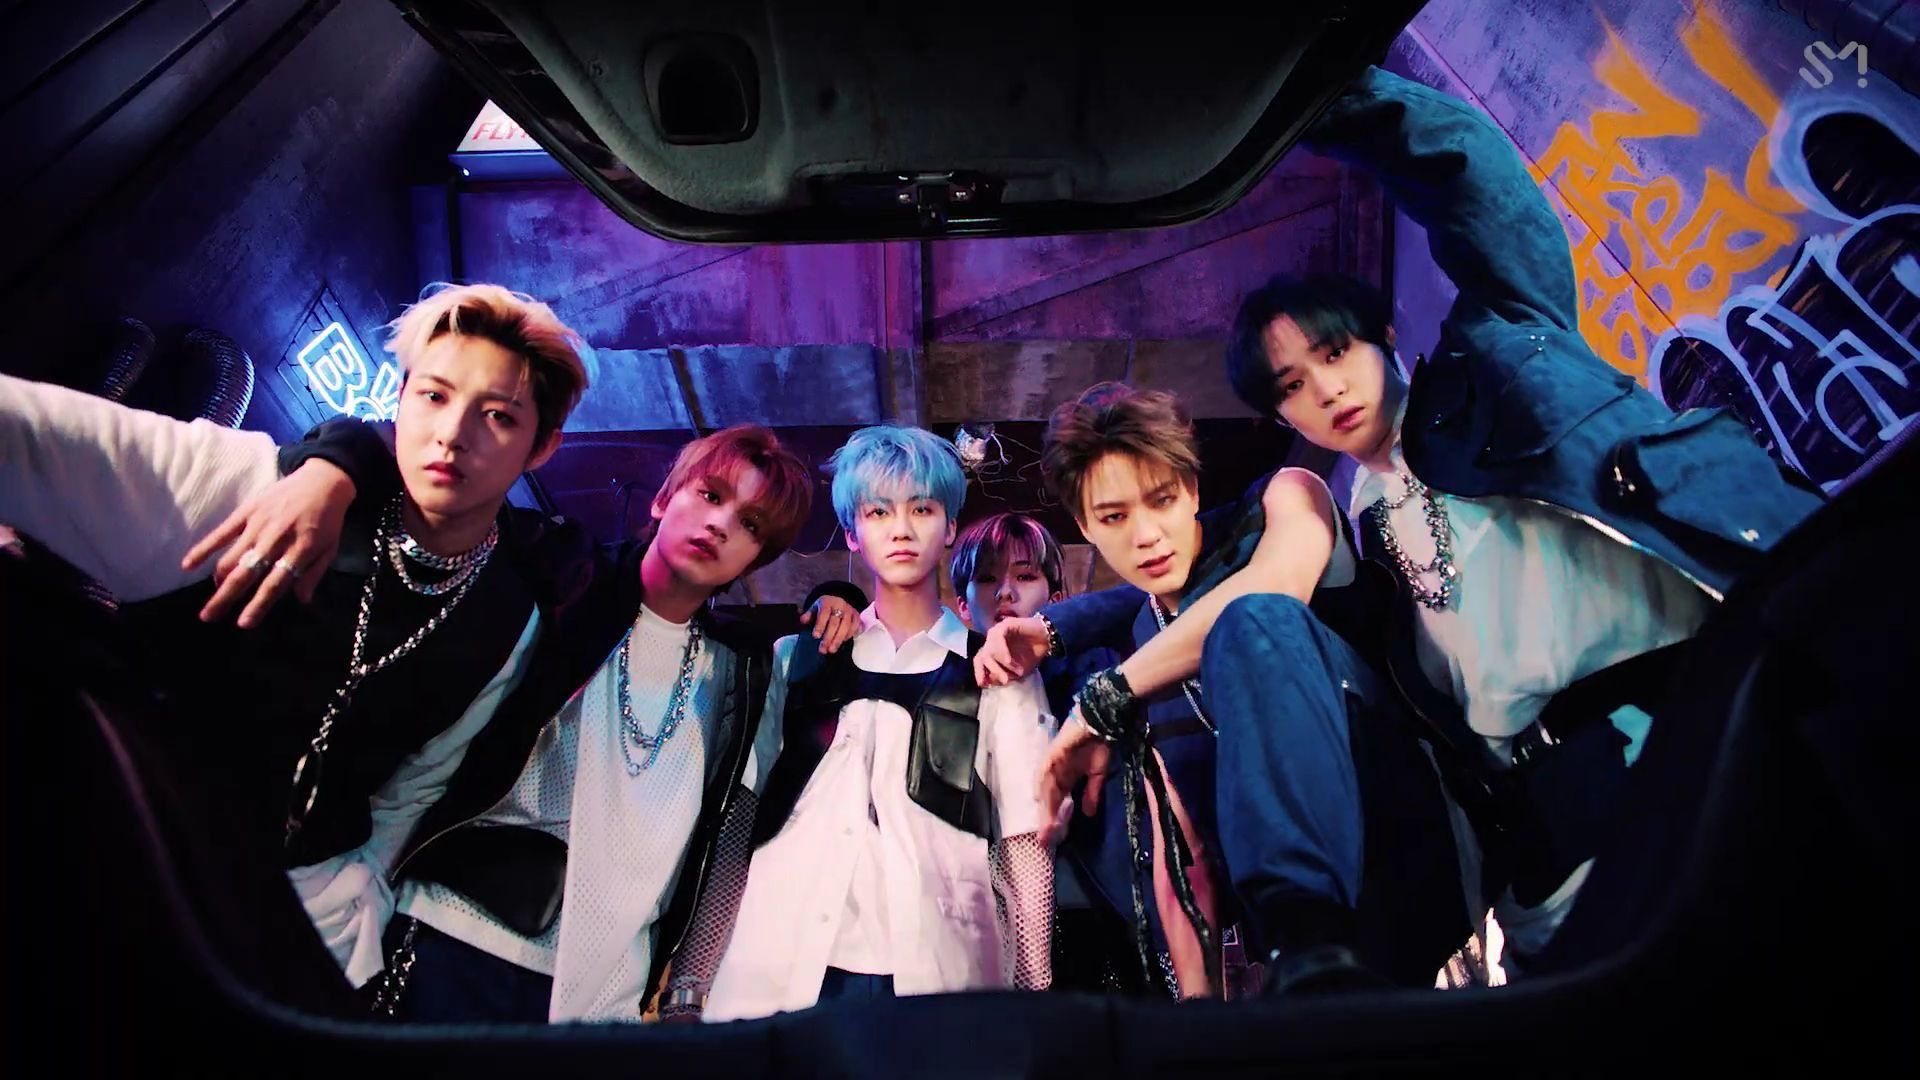 Nct Pics On Twitter Nct Dream Nct Nct 127